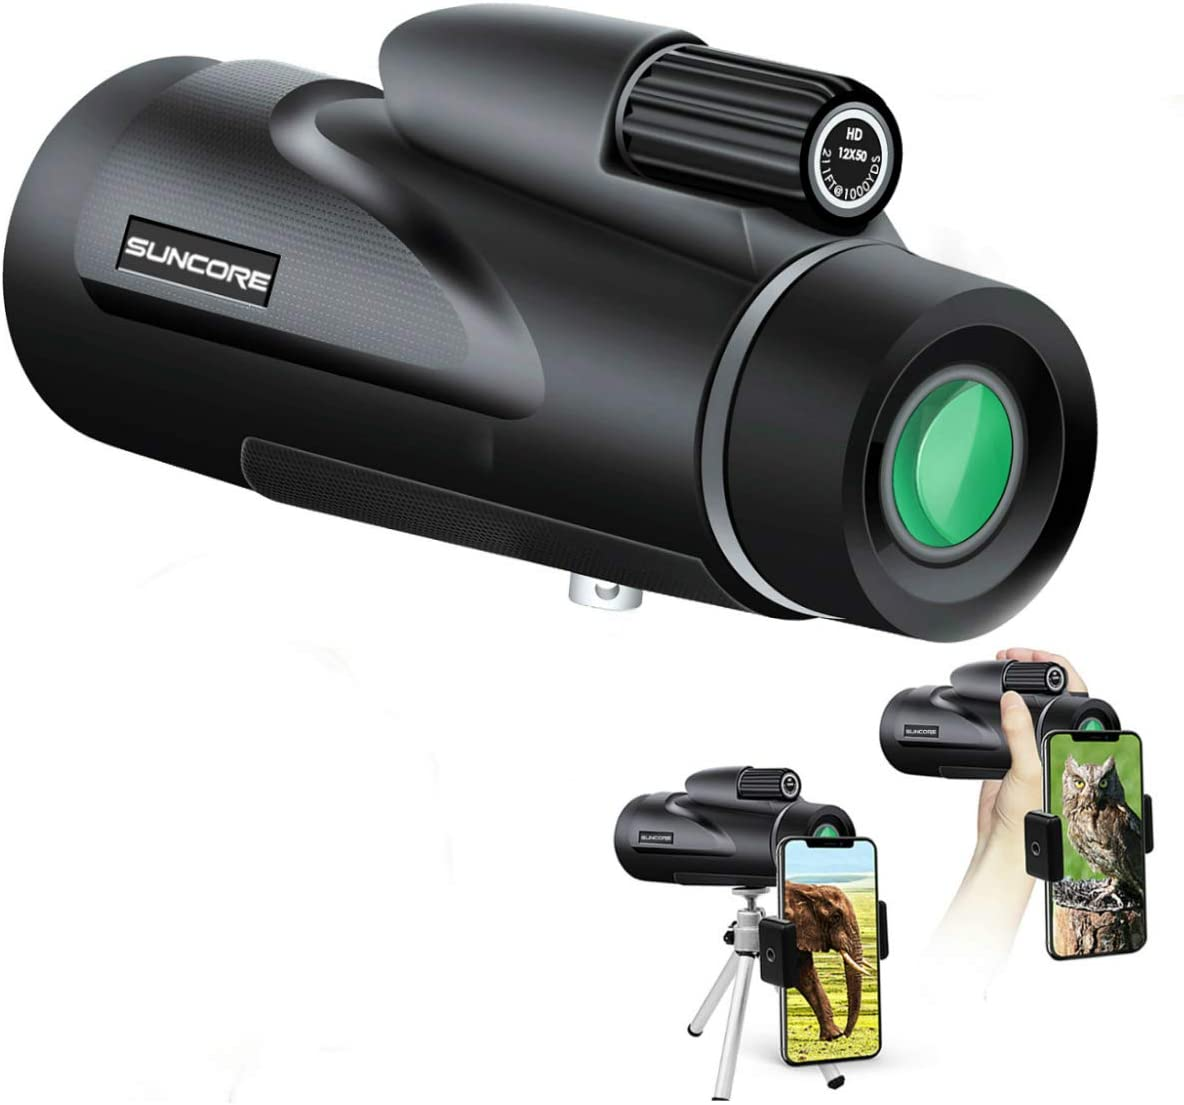 Monocular Telescope, 12 50 High Power HD SUNCORE Monocular with Smartphone Holder and Tripod Waterproof HD FMC Bak4 Prism for Youth Bird Watching Match Hunting Camping Outdoor Sporting